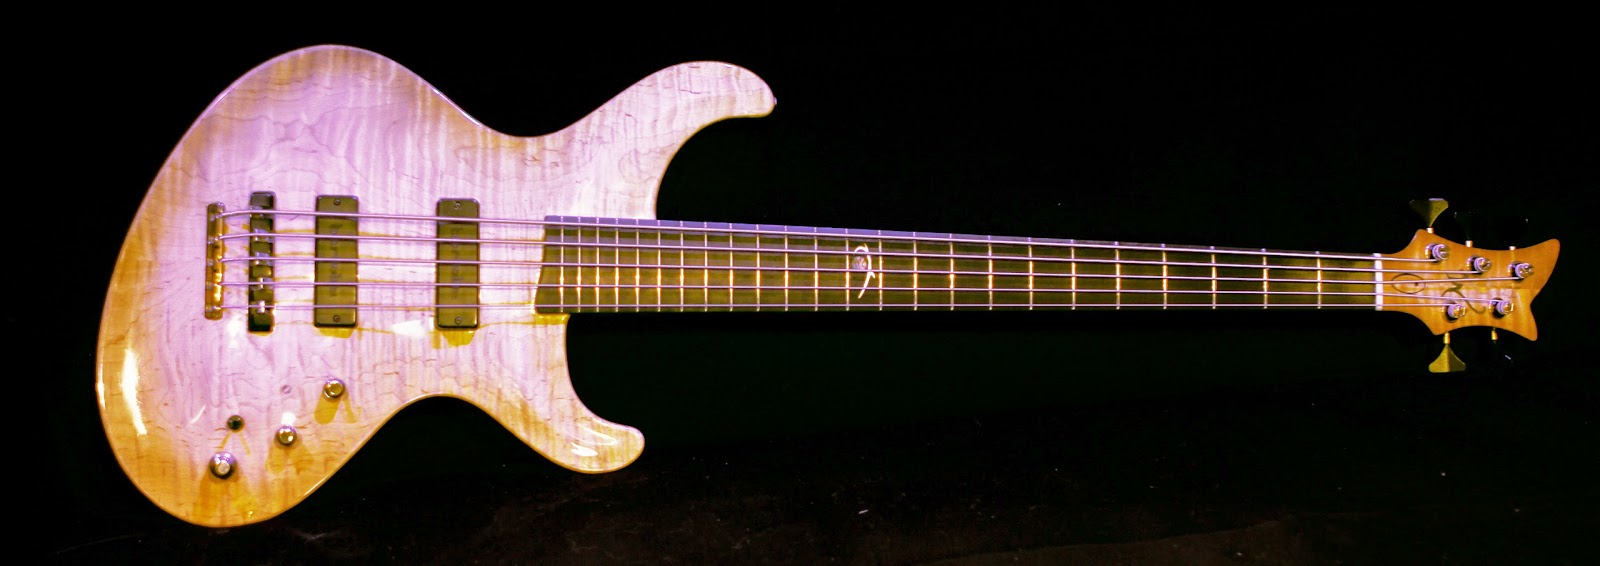 Woody Phifer Signature Bass By: Anthony Paganini